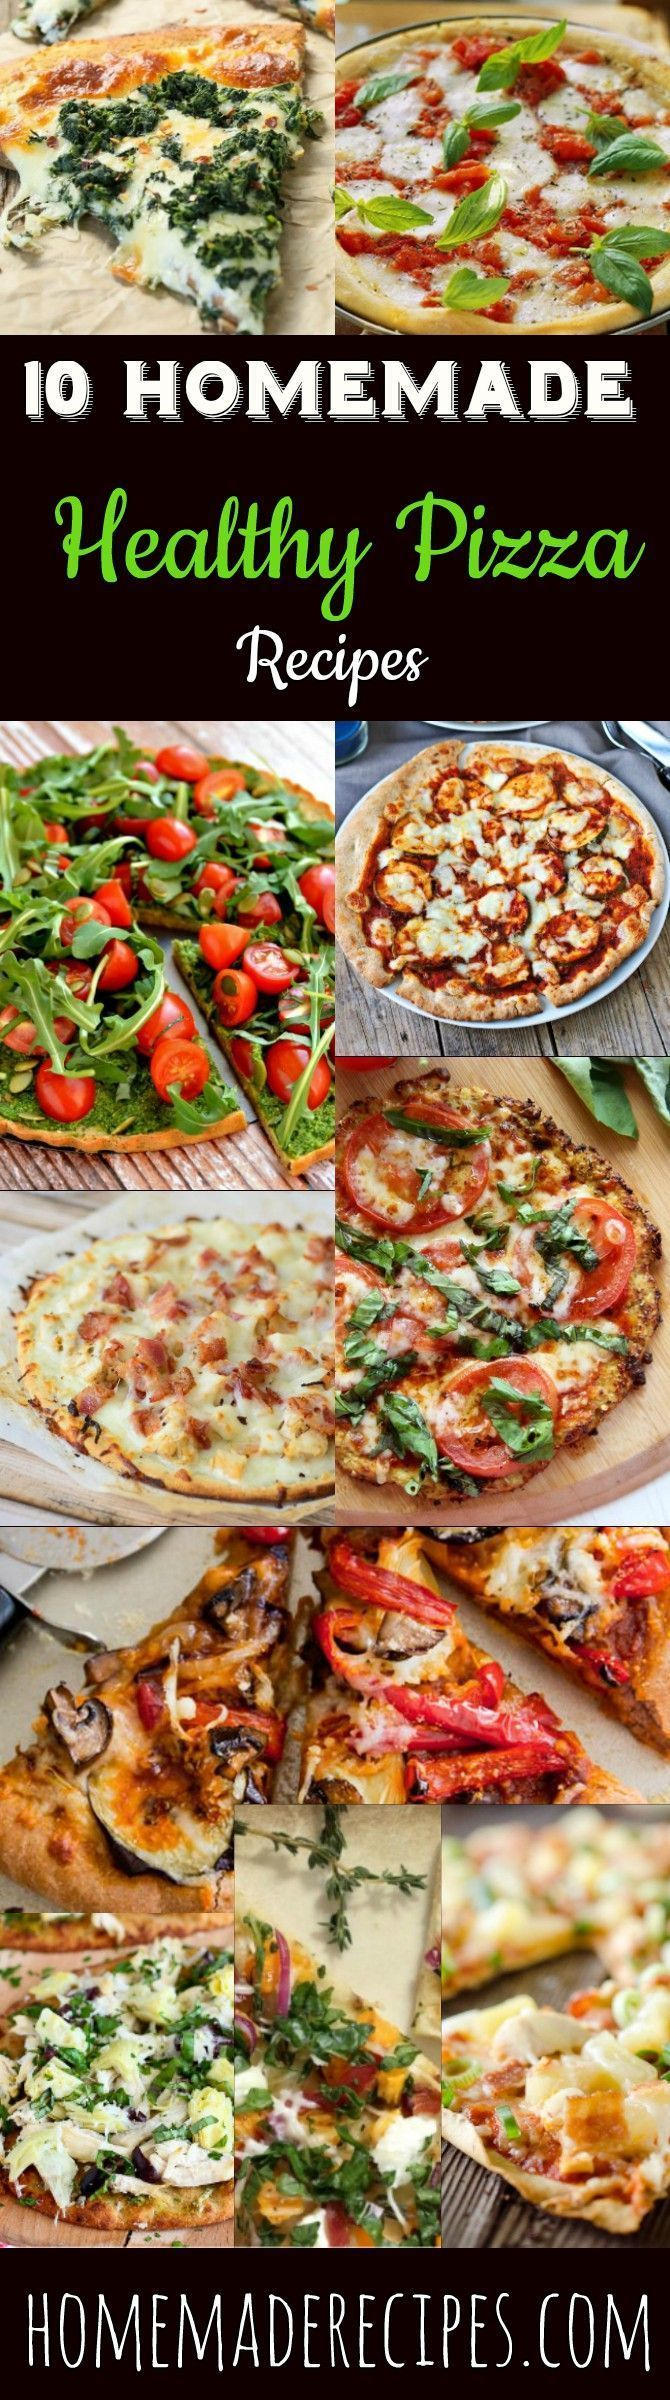 299 best healthy pizza recipes images on pinterest pizza recipes